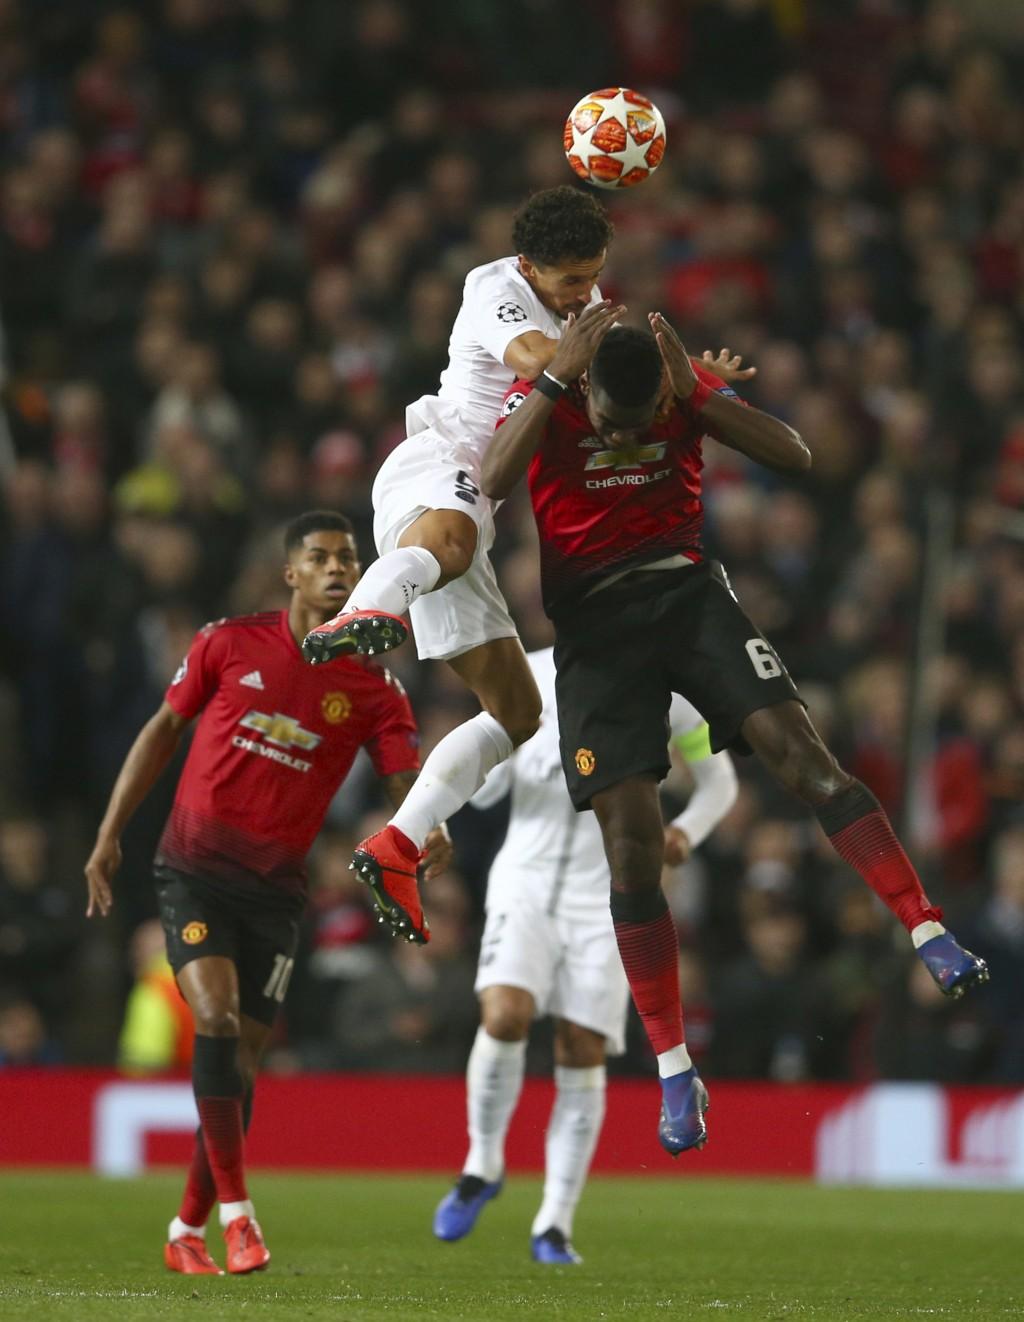 Manchester United's Paul Pogba, right is fouled as he leaps for the ball by Paris Saint Germain's Marcos Marquinhos during the Champions League round